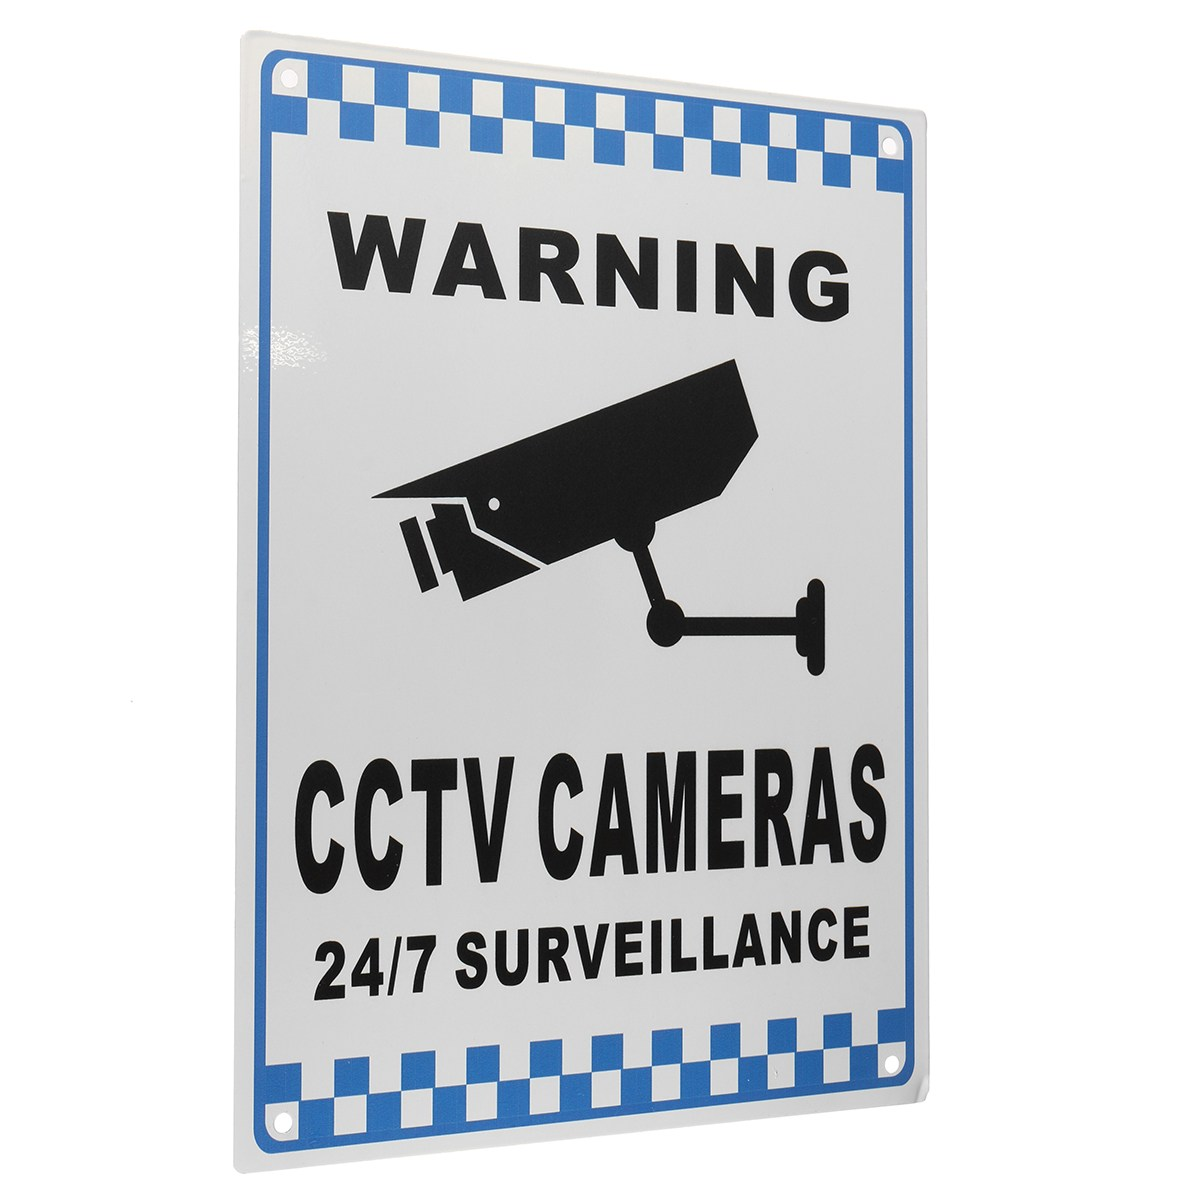 NEW Safurance CCTV Warning Security Video Surveillance Camera Safety Sign Reflactive Metal Home Security